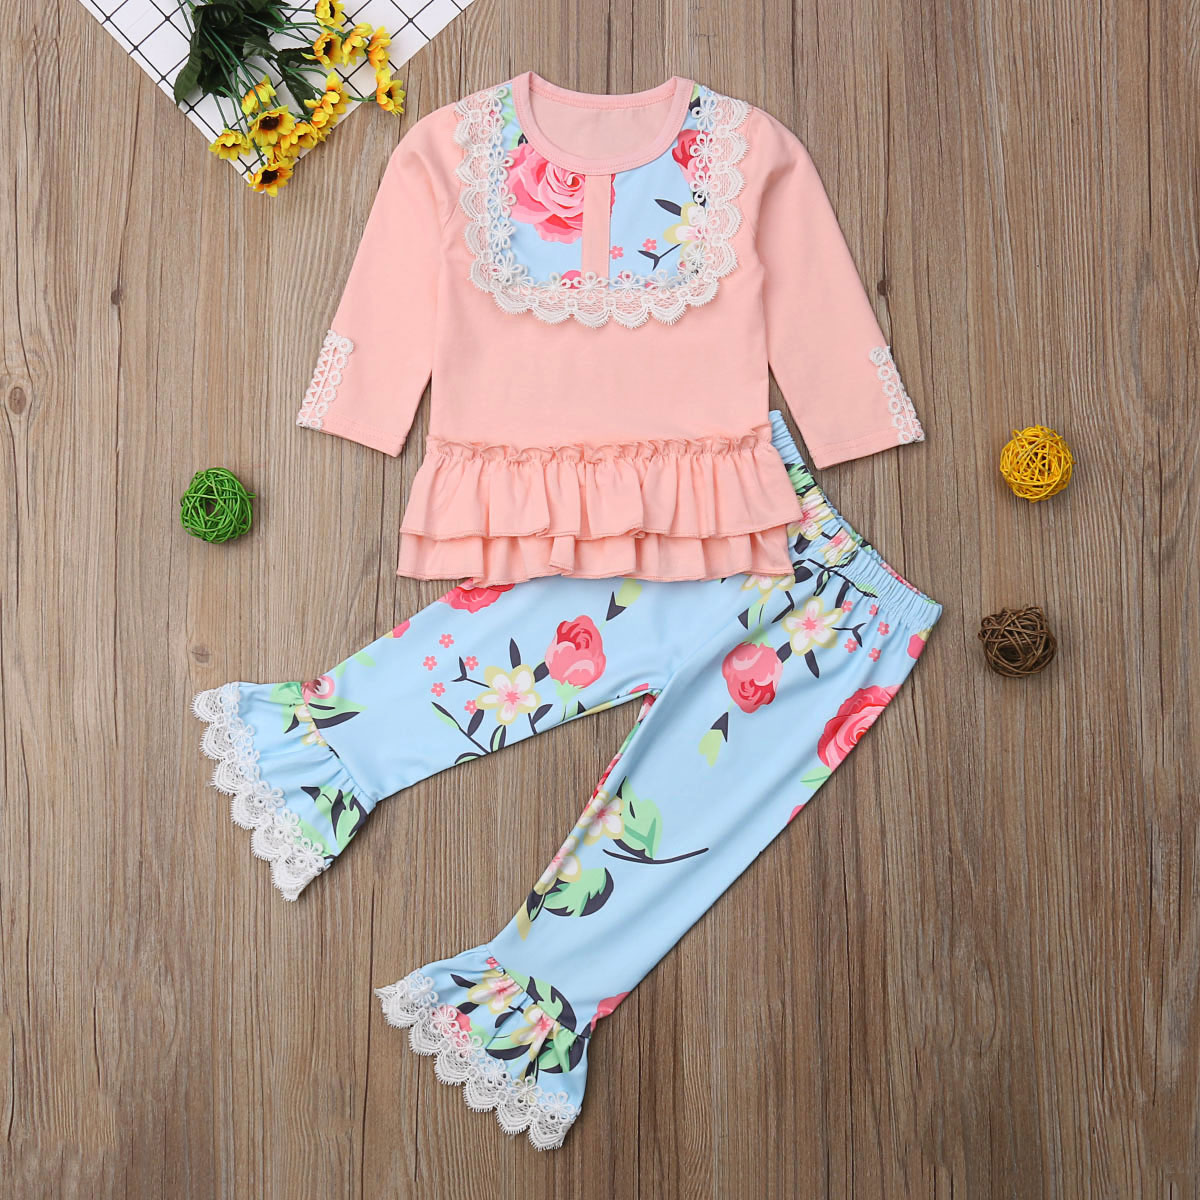 Toddler Newborn Kids Baby Girl Lace Ruffle Tops Flower Flared Pants 2Pcs Outfits Cotton Casual Cute Clothes 6M-5T